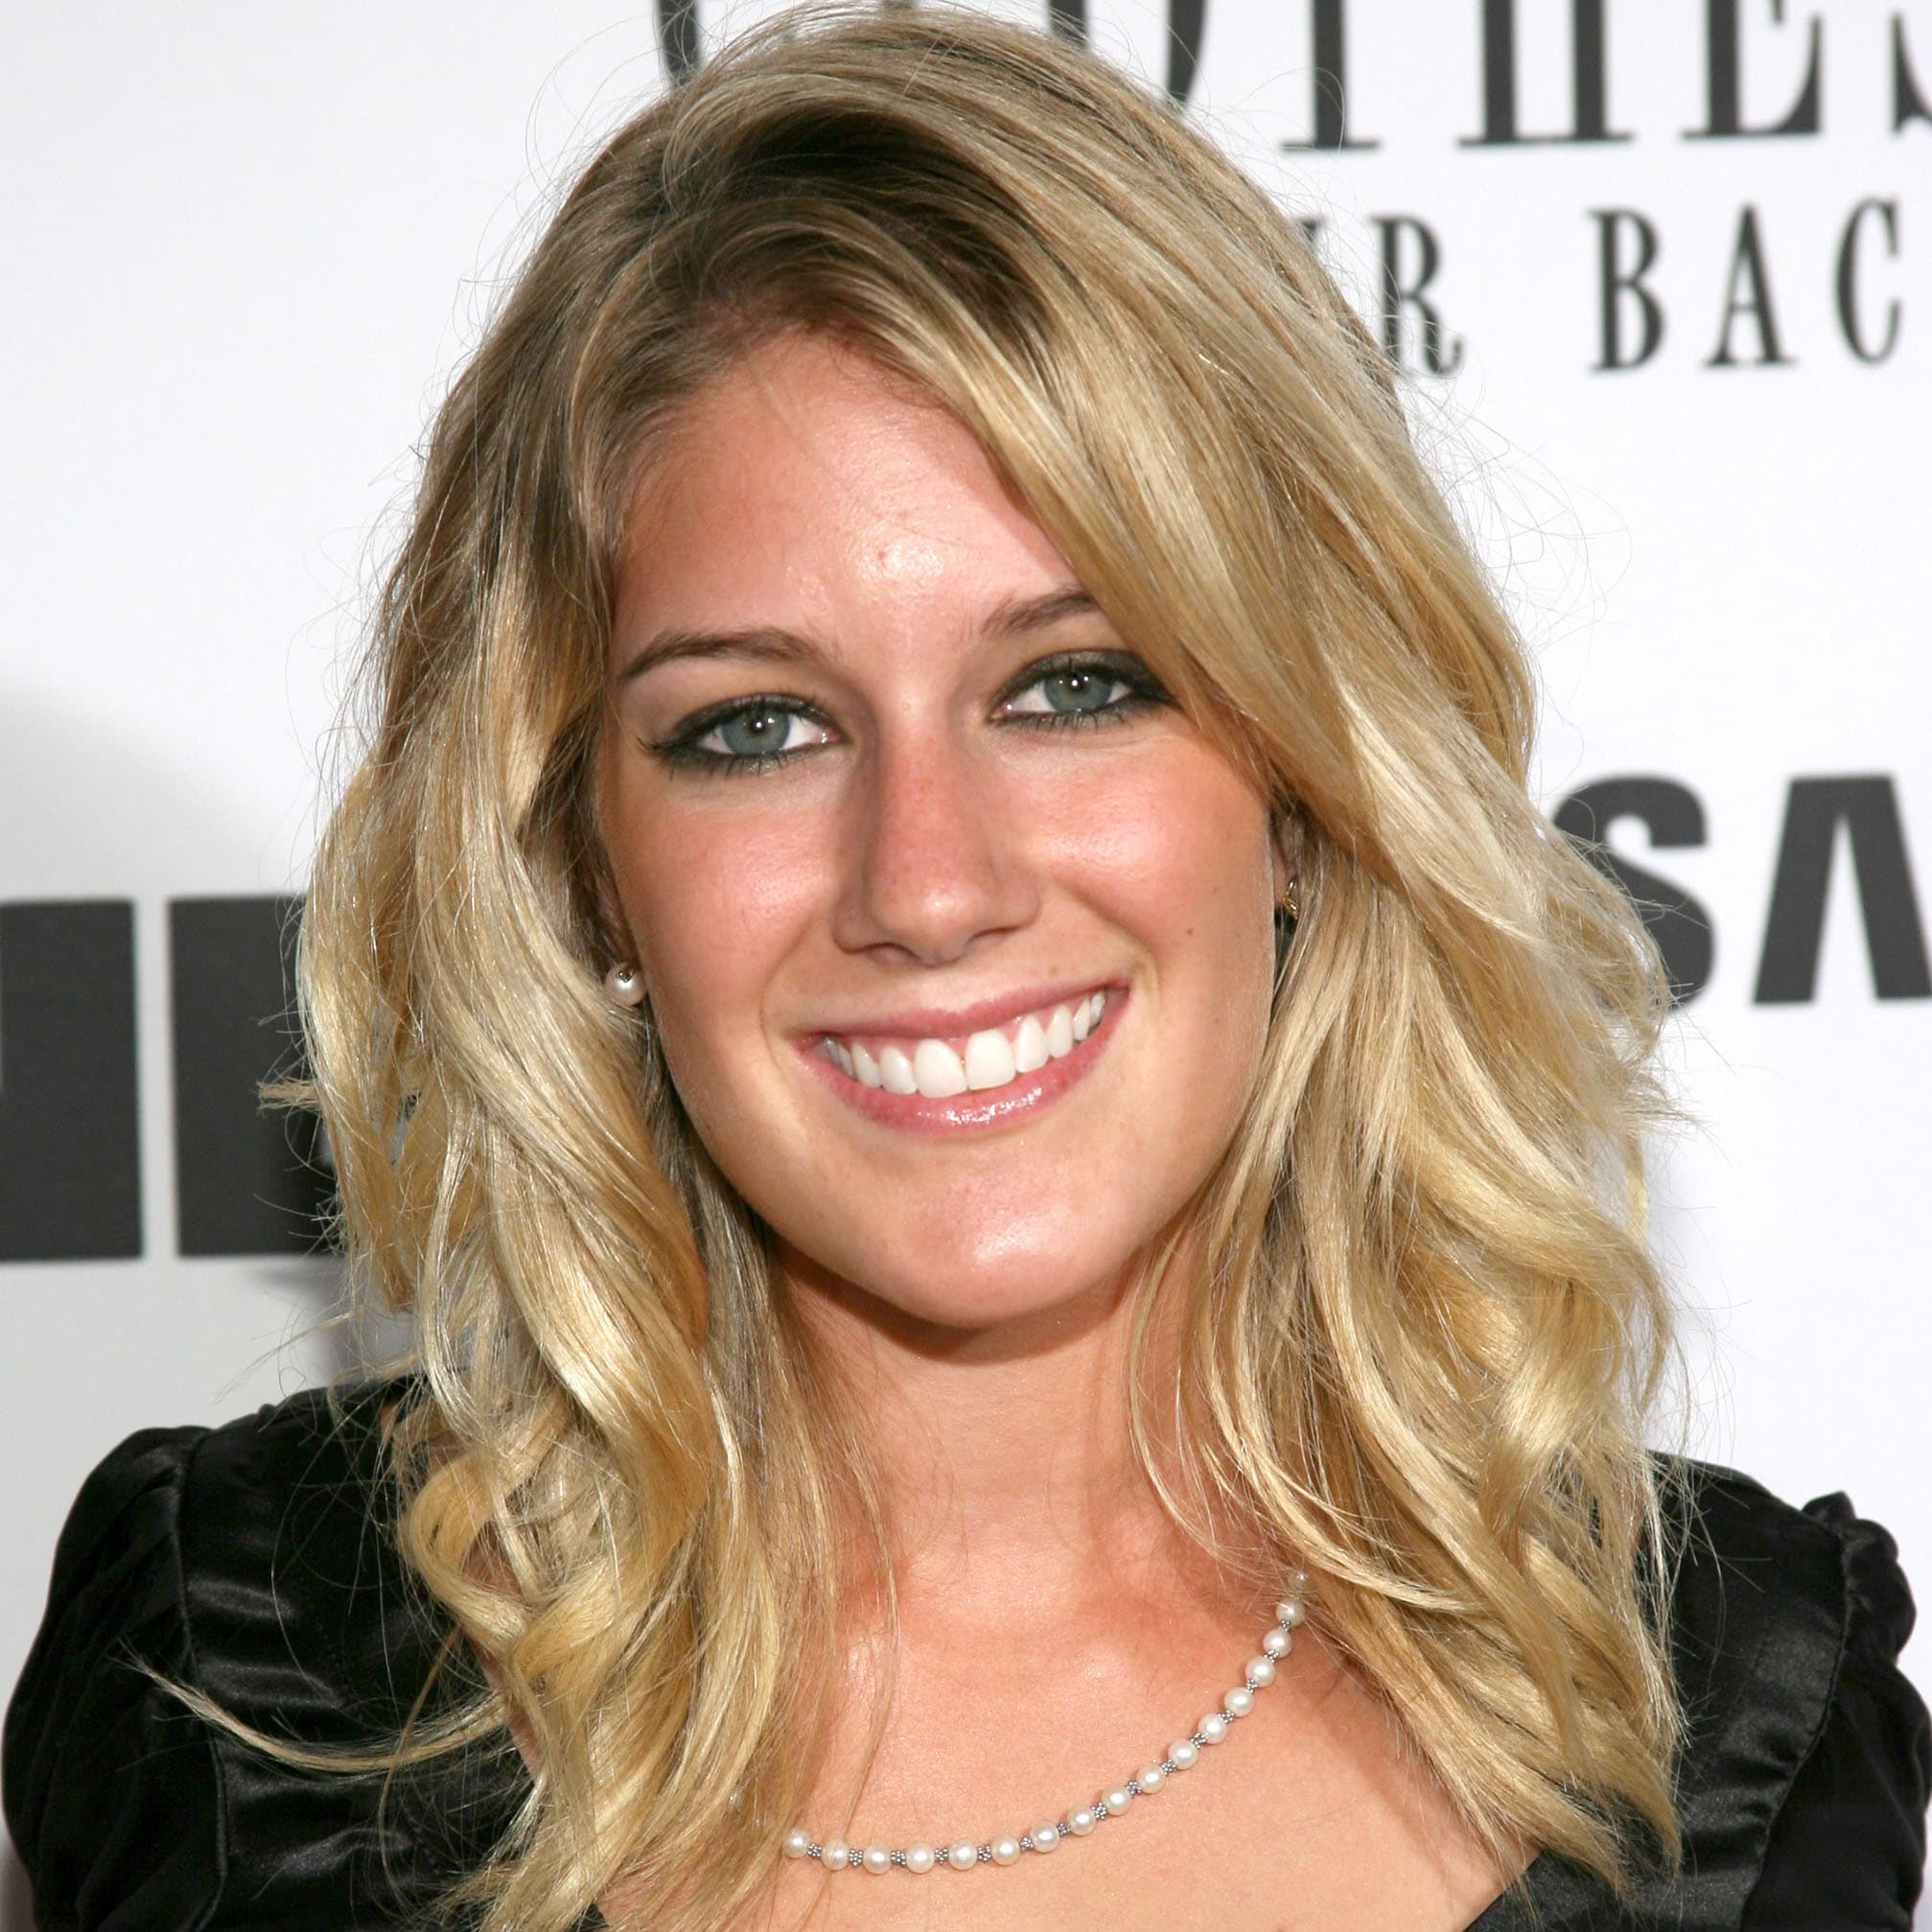 Heidi From The Hills Before And After Plastic Surgery 1